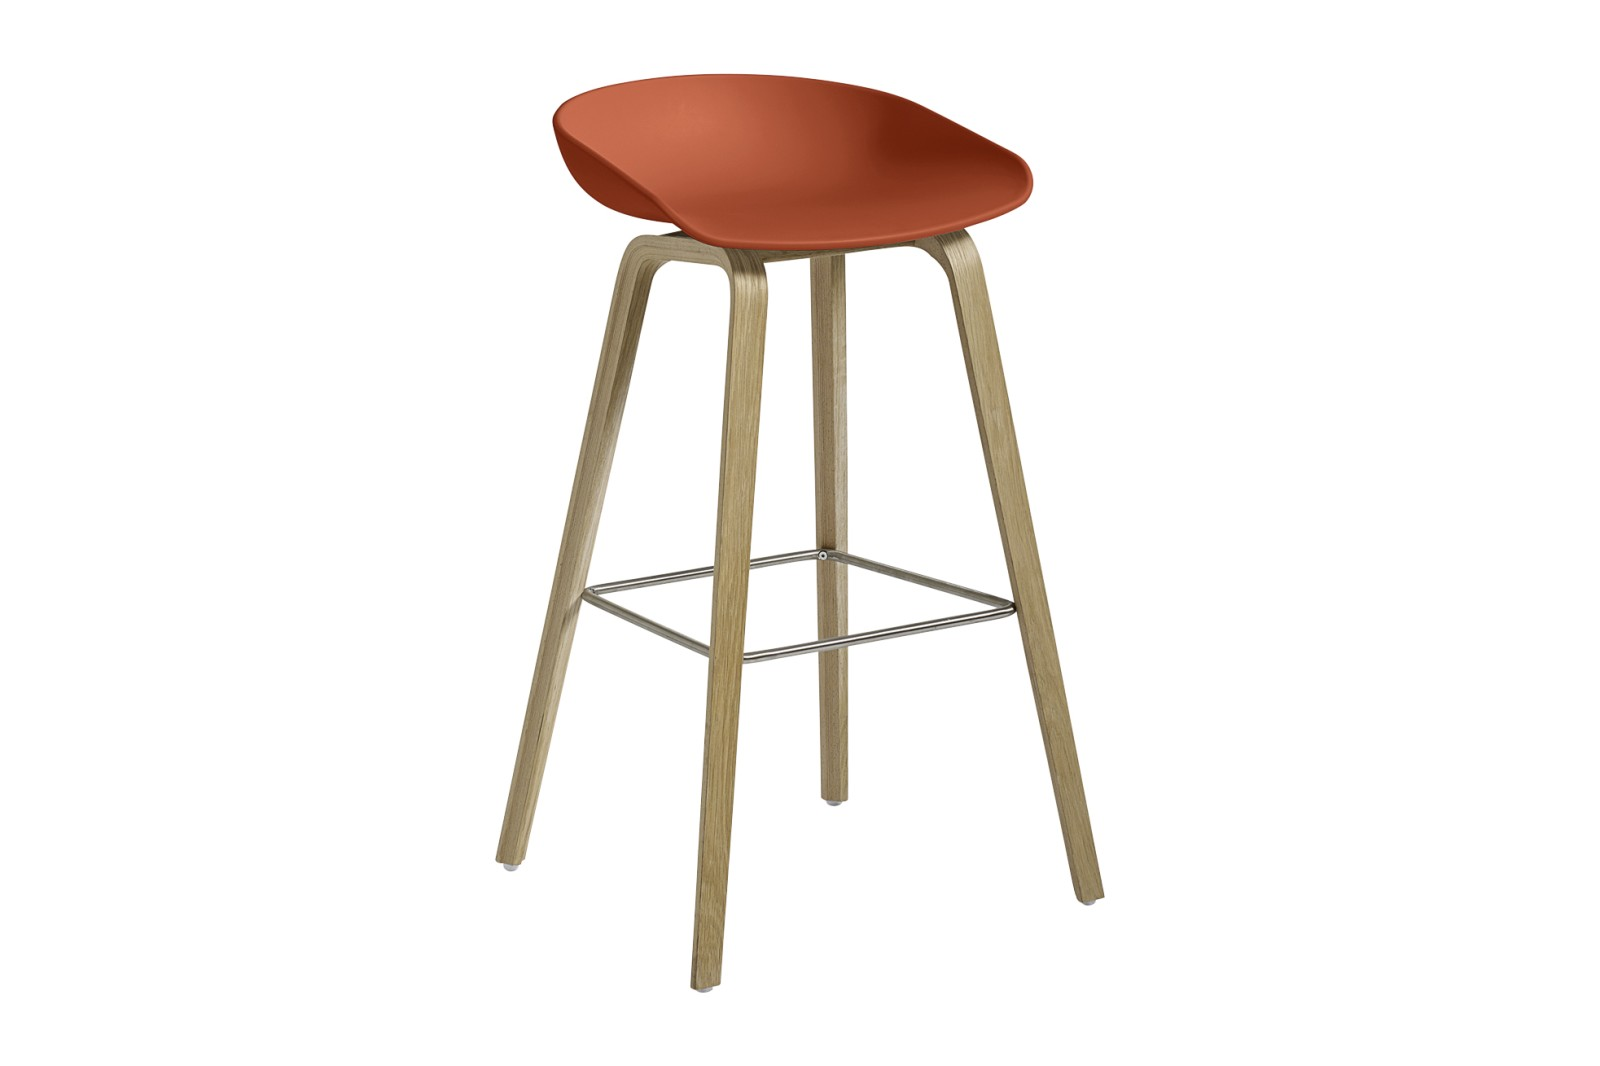 About A Stool AAS32 Soap Treated Oak Base, Orange Seat, High, Stainless Steel